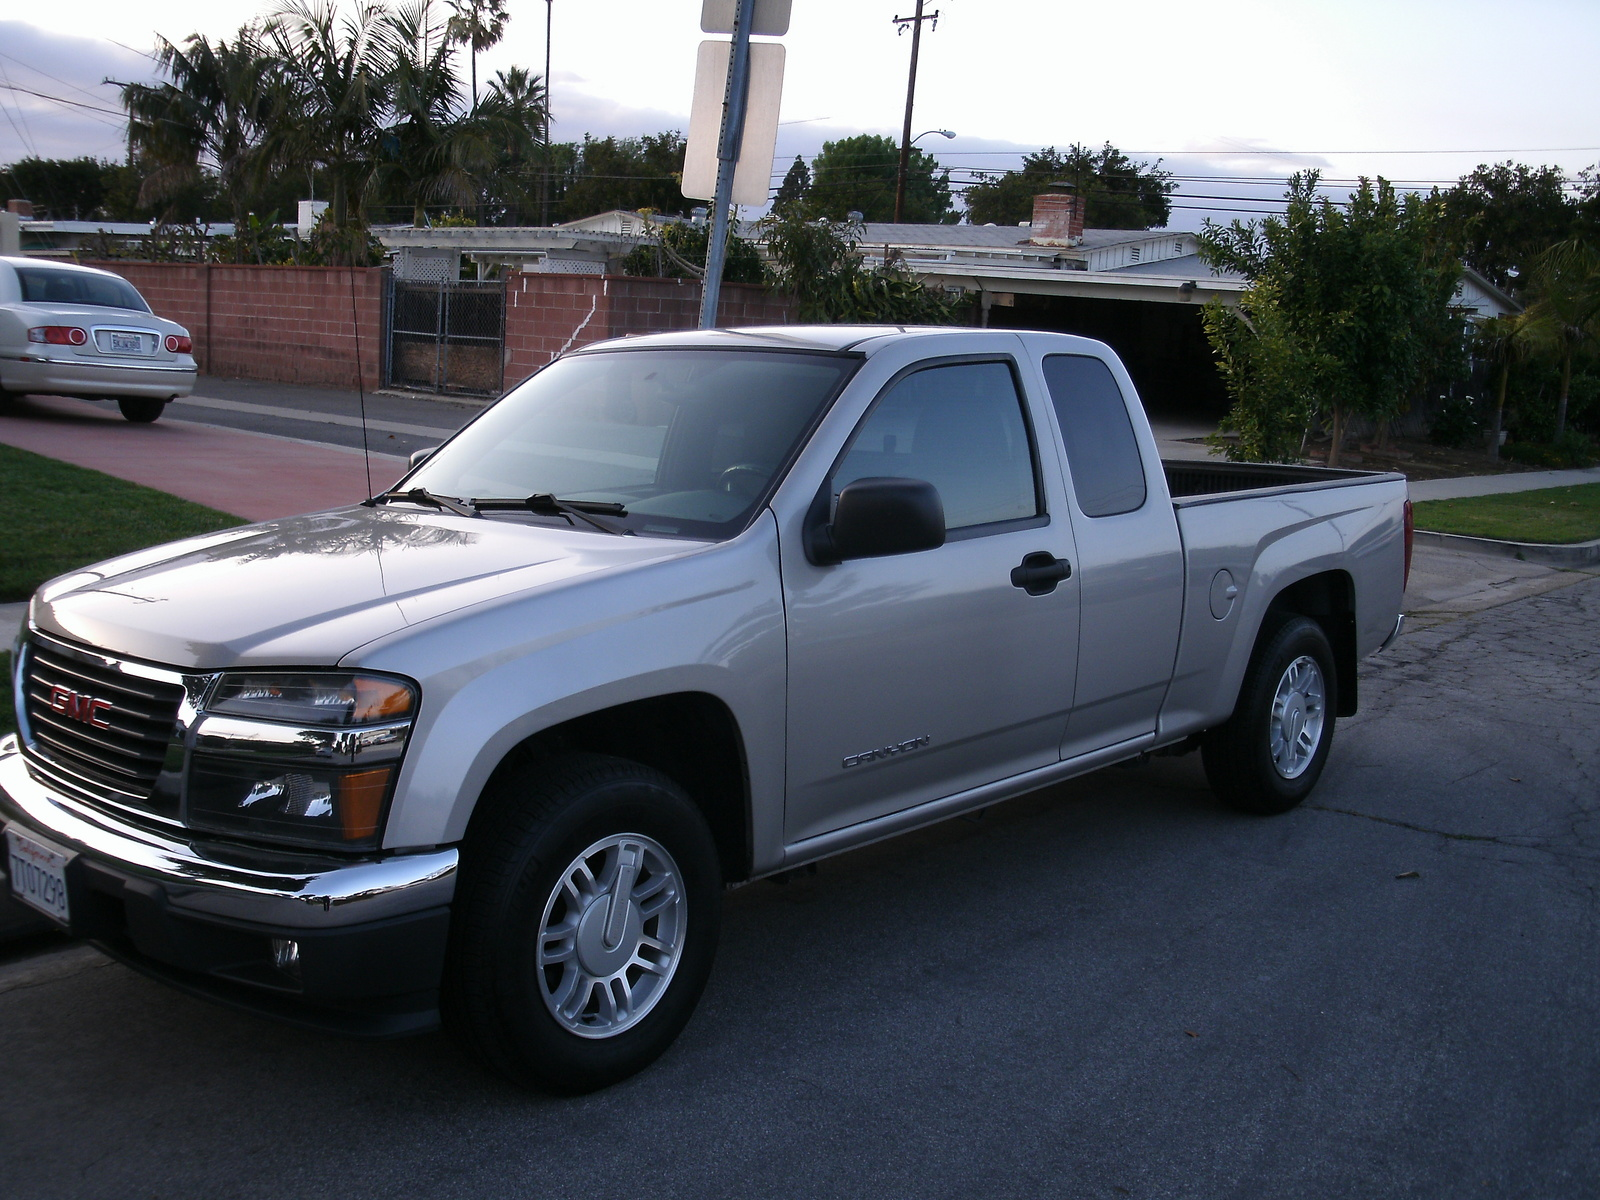 2005 gmc canyon information and photos momentcar. Black Bedroom Furniture Sets. Home Design Ideas